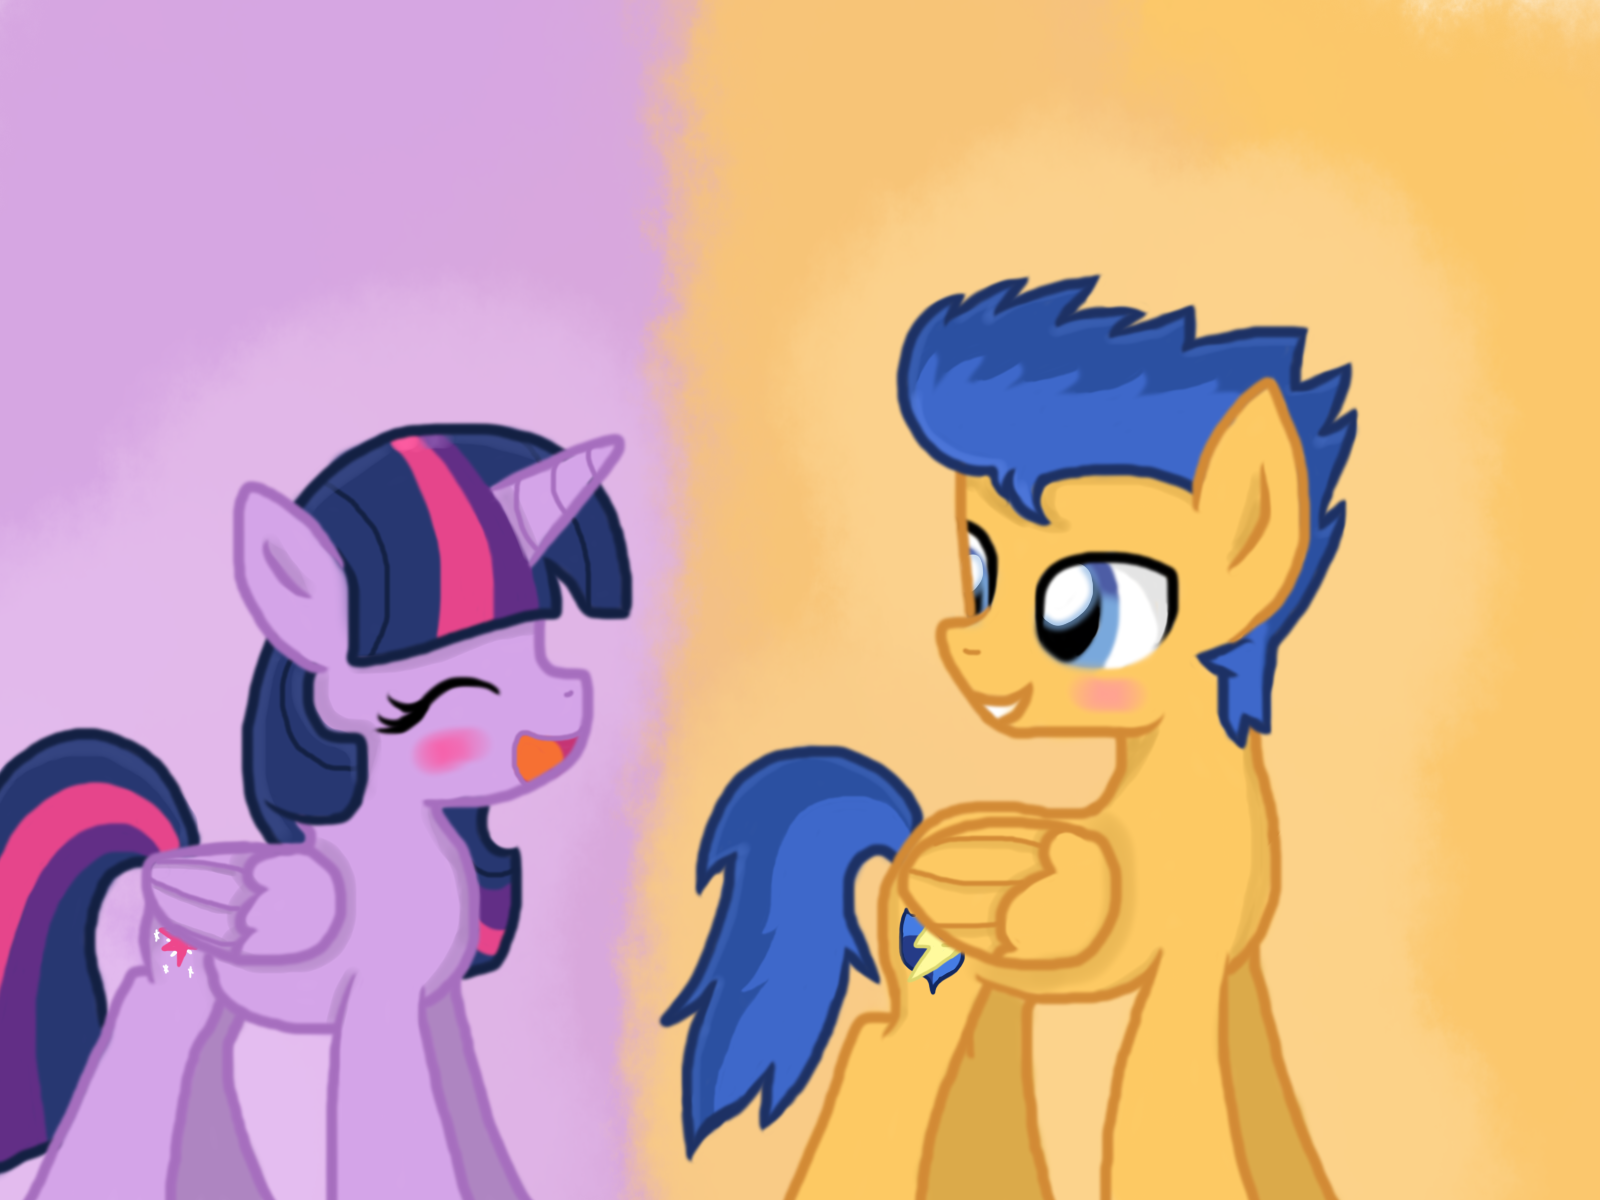 Equestria Daily - MLP Stuff!: Drawfriend Stuff #870 |My Little Pony Friendship Is Magic Twilight Sparkle And Flash Sentry